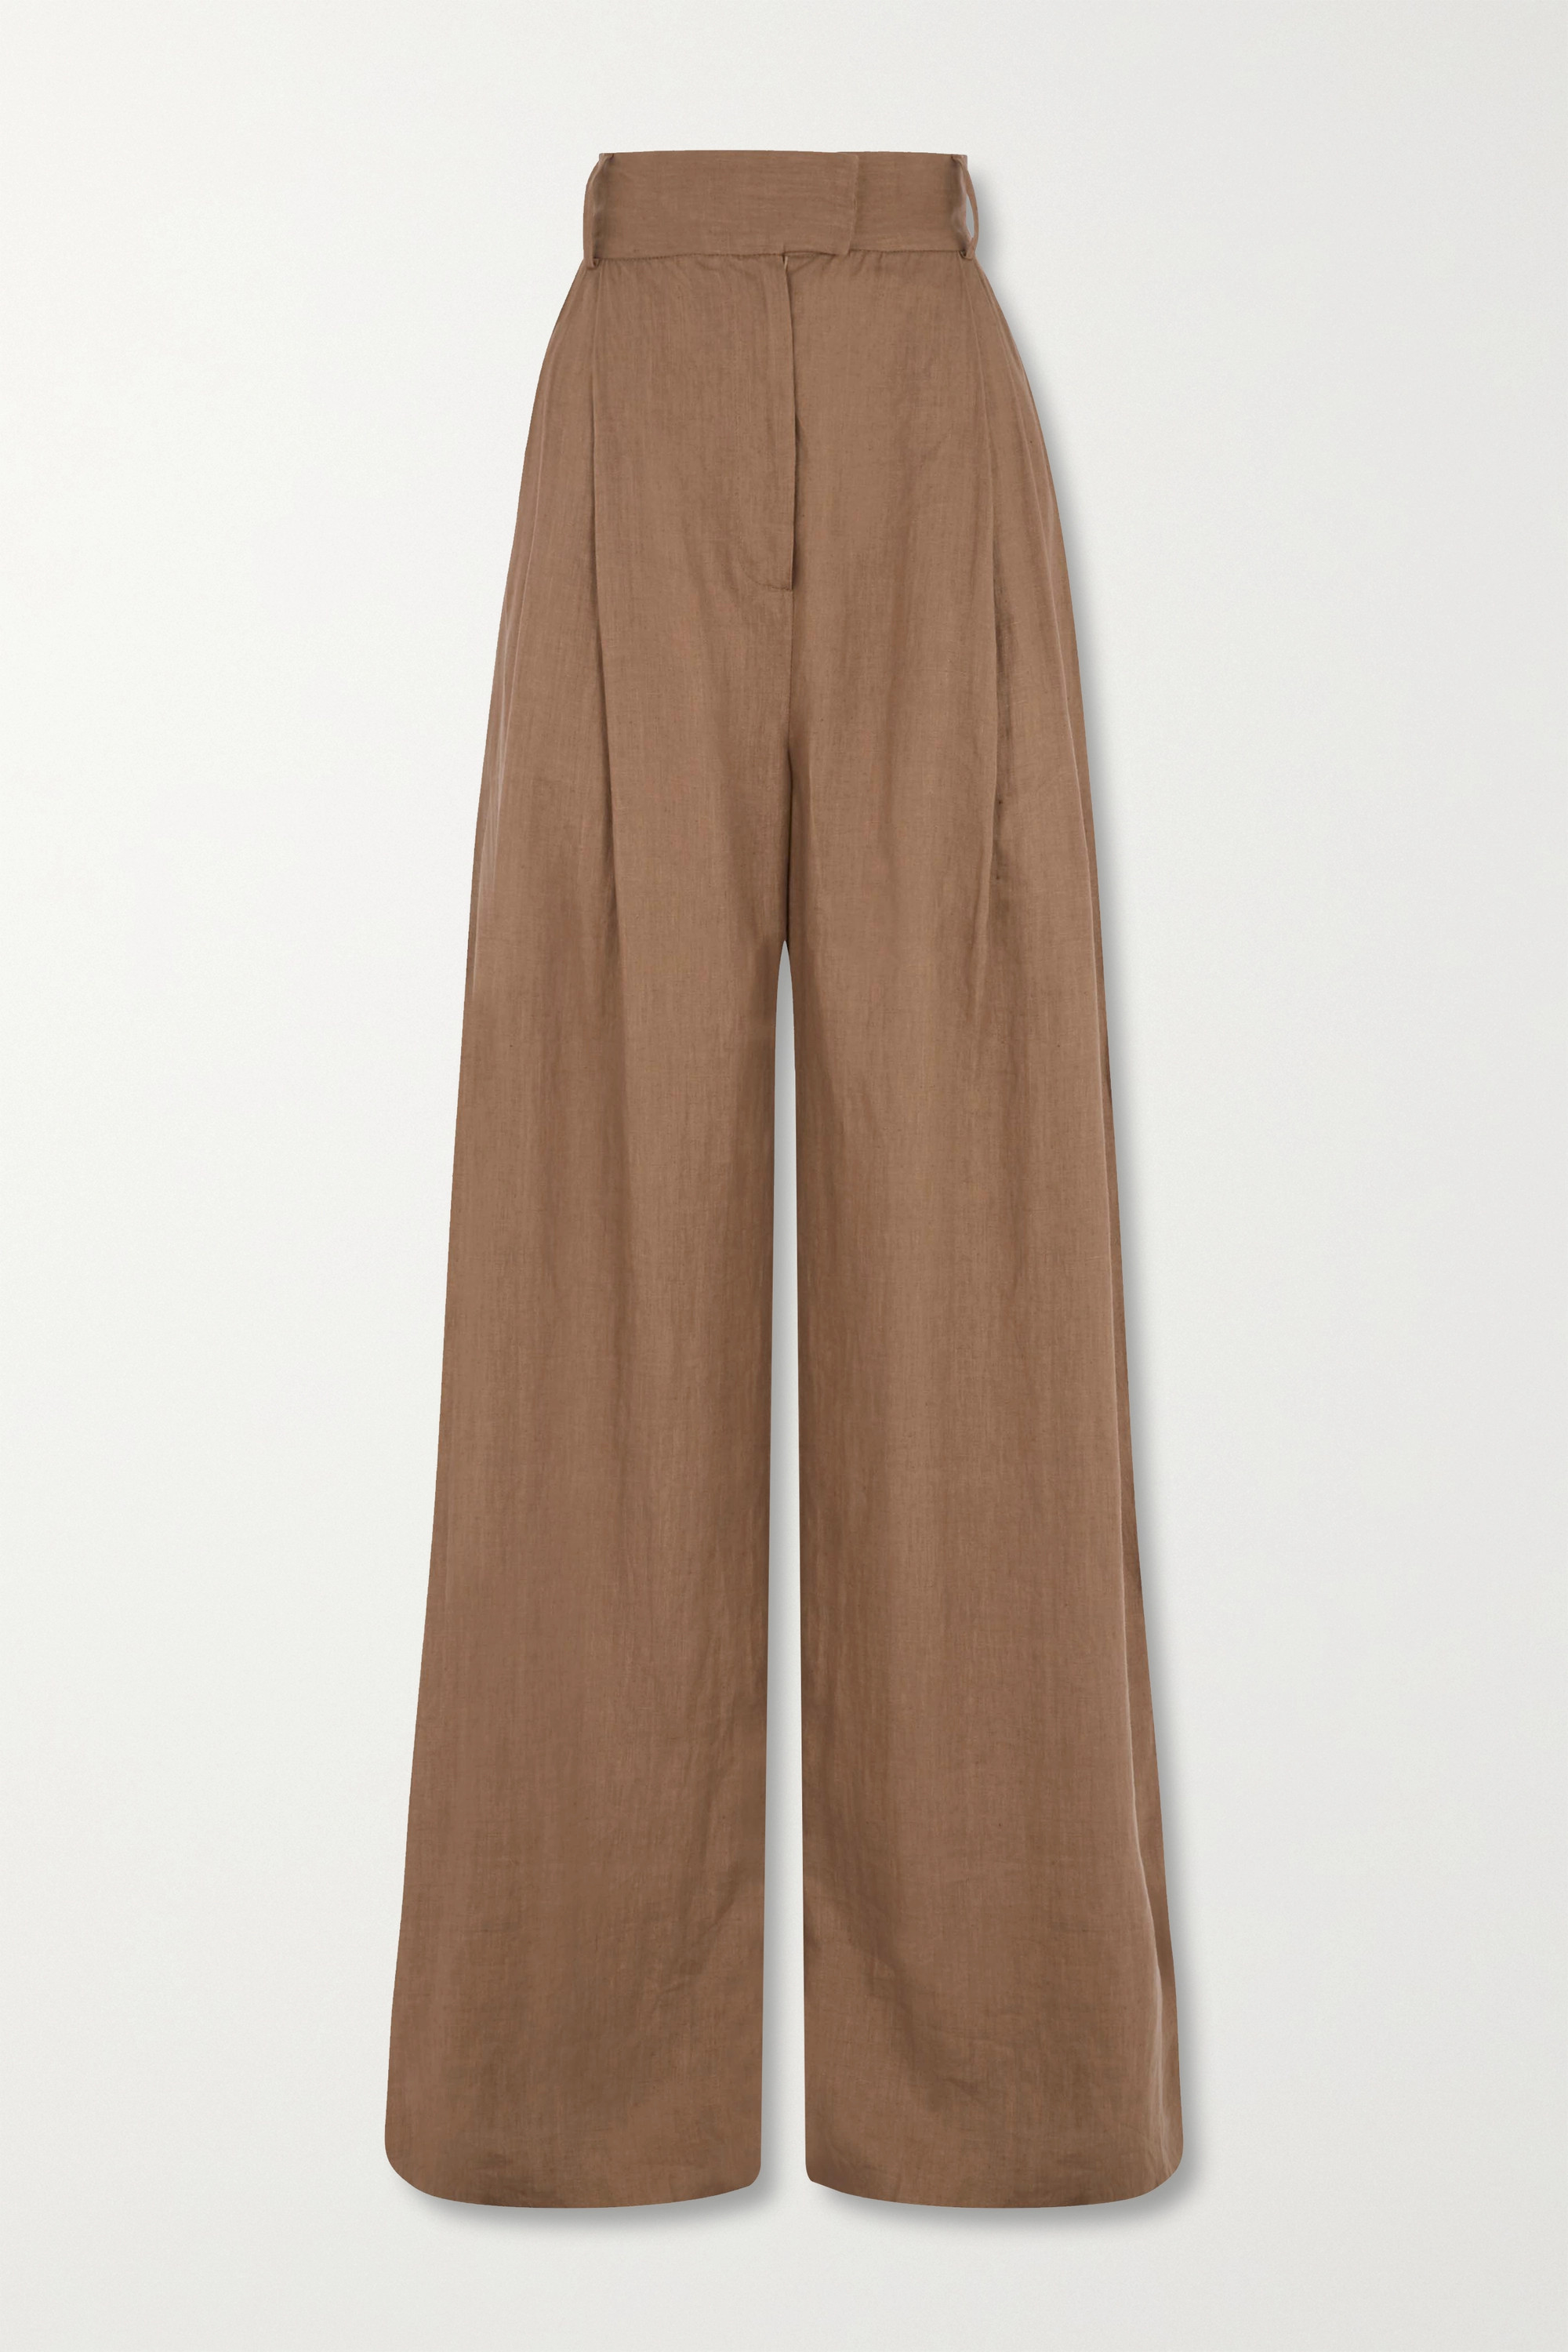 Three Graces London Molly pleated linen wide-leg pants